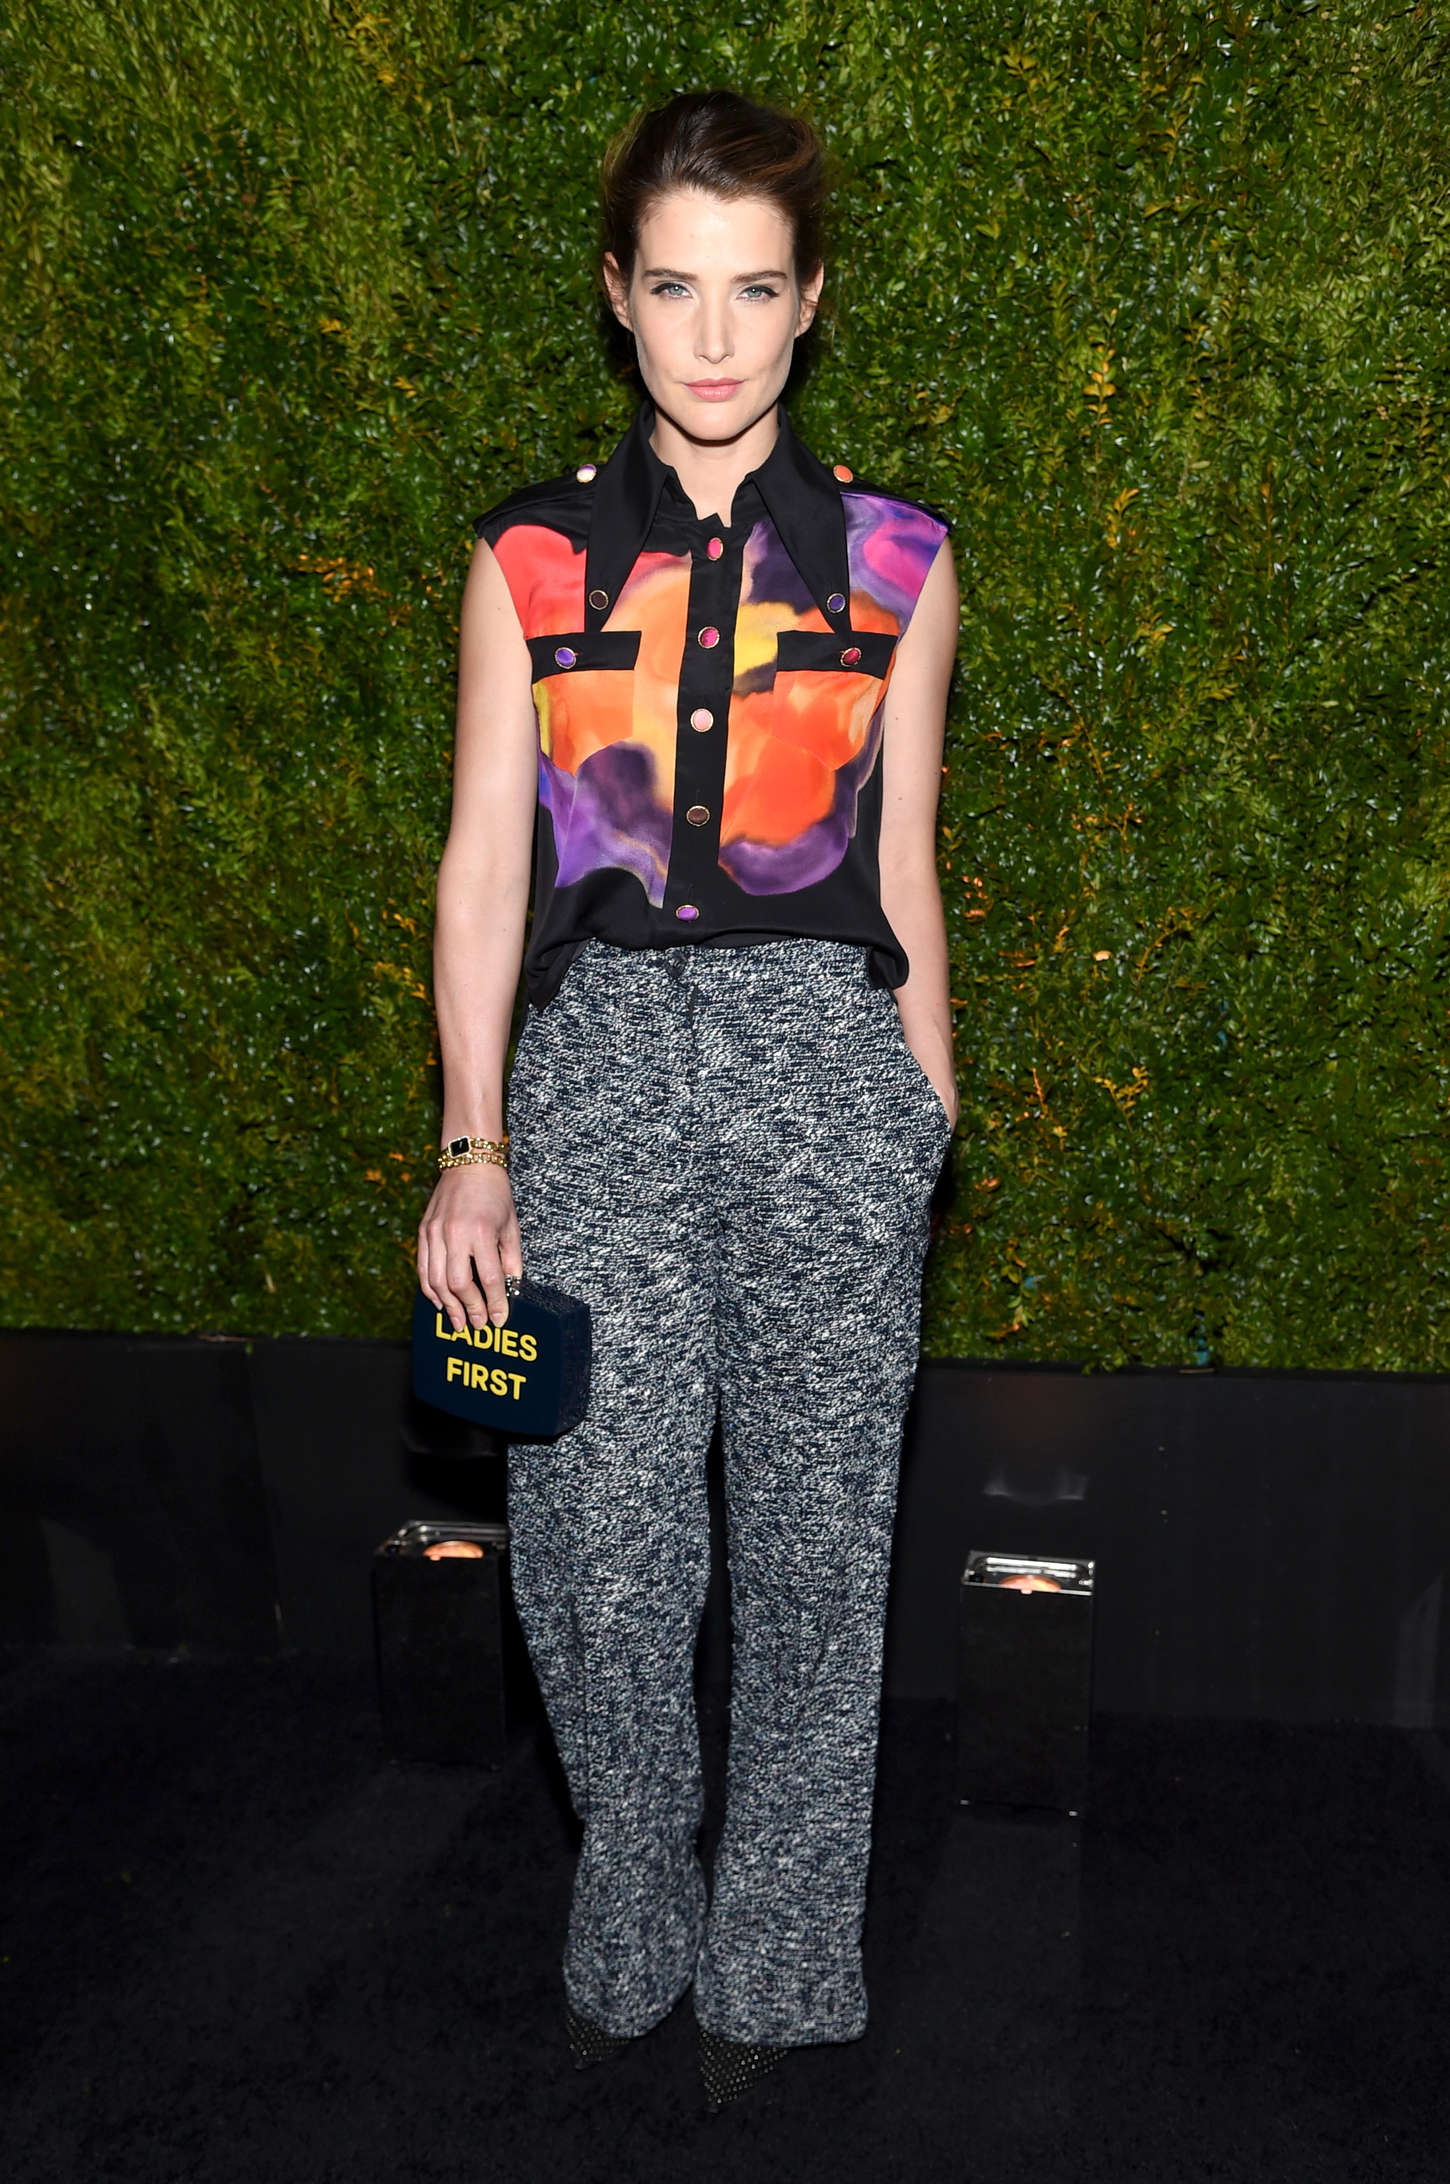 Cobie Smulders Chanel Dinner in New York